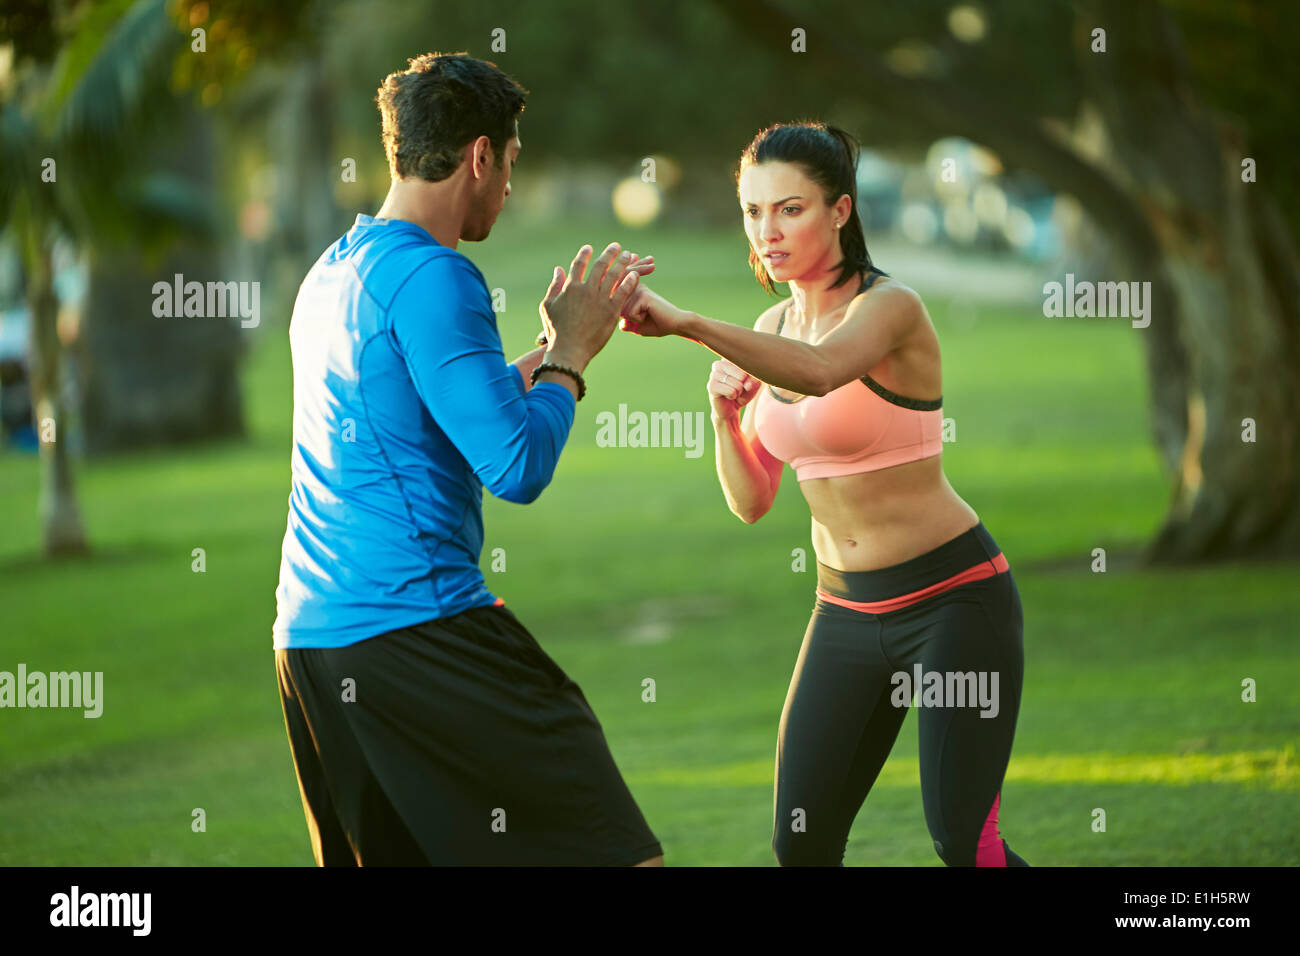 Man and woman in park boxing - Stock Image